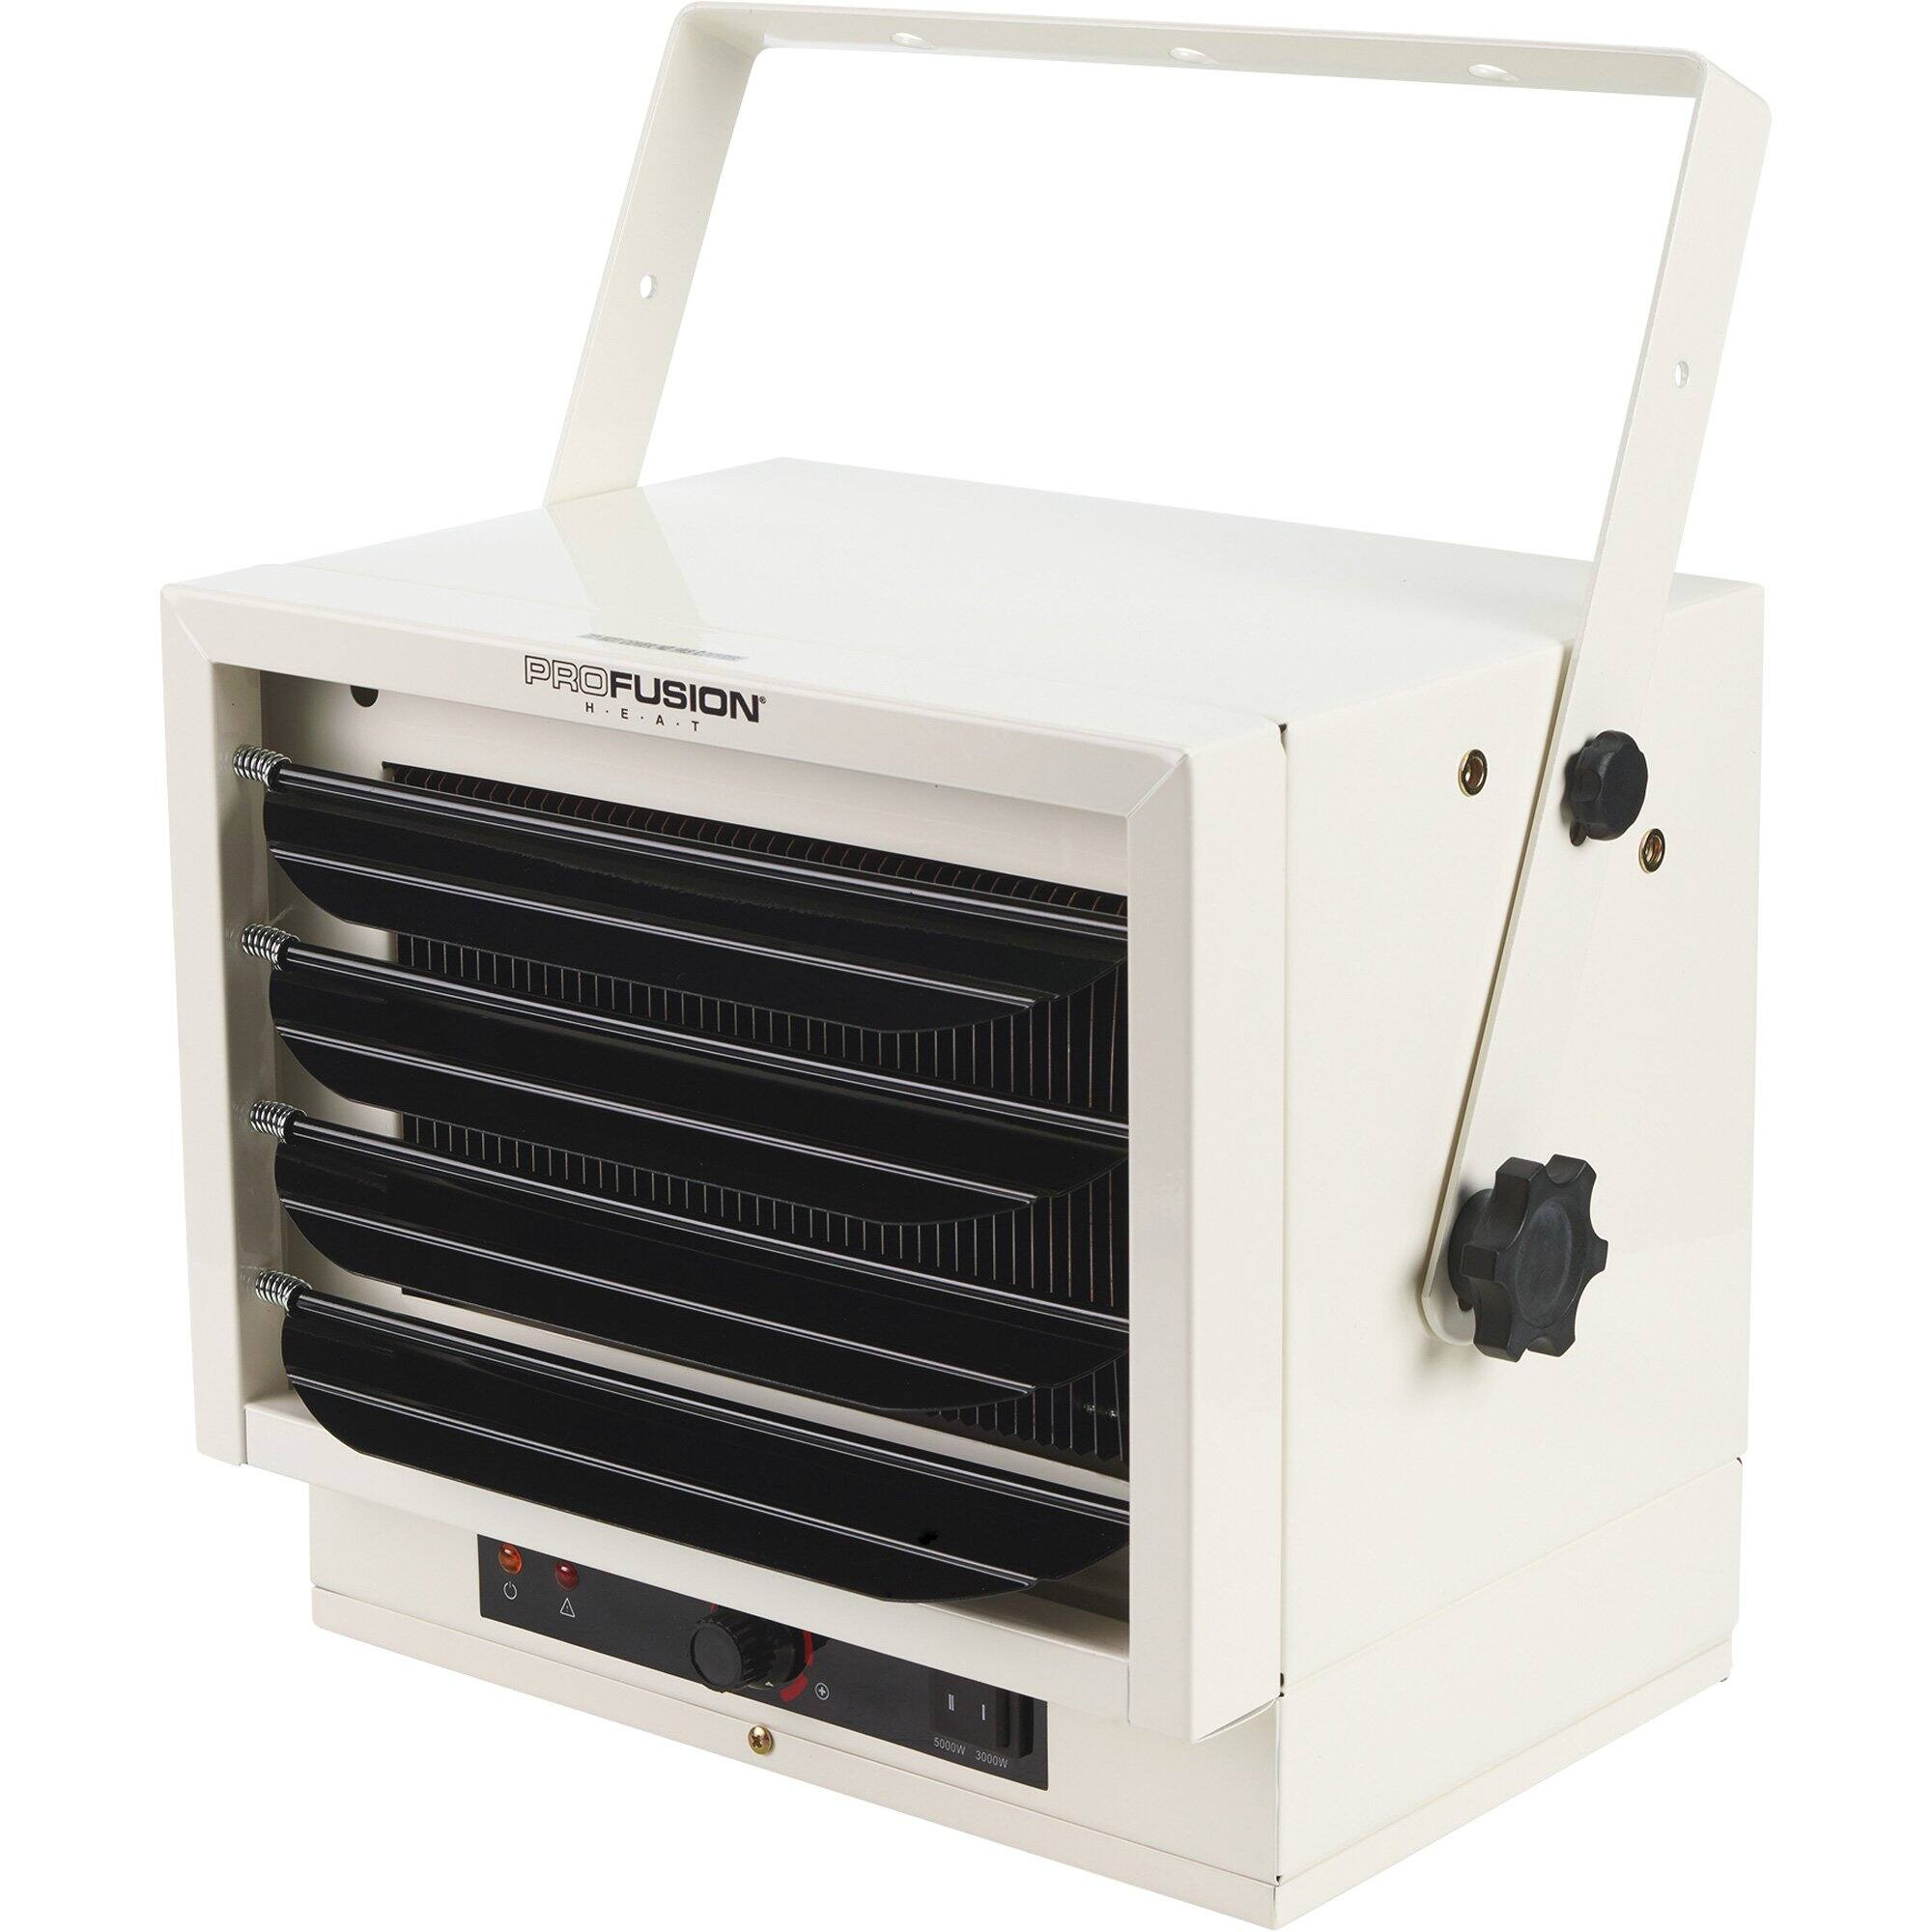 ProFusion Heat Ceiling-Mounted Garage Heater — 17,065 BTU, 240 Volts, Model# EH-4604 $79.99